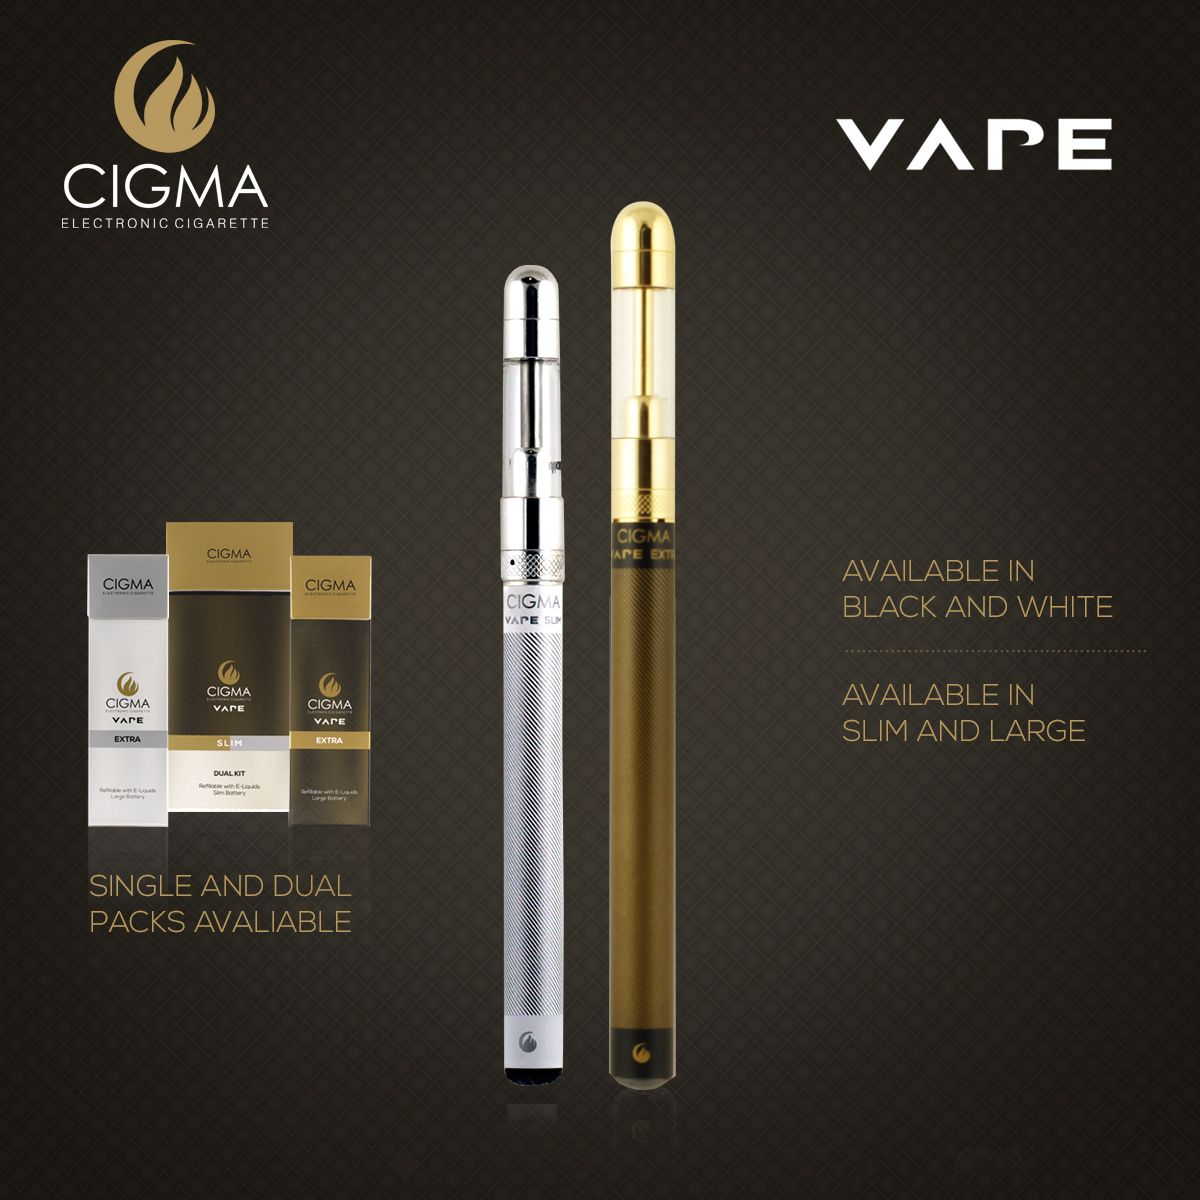 Cigma Vape provides high quality e cigarette brands online. Buy Best electronic  cigarette (e cig) in the UK at very reasonable prices.